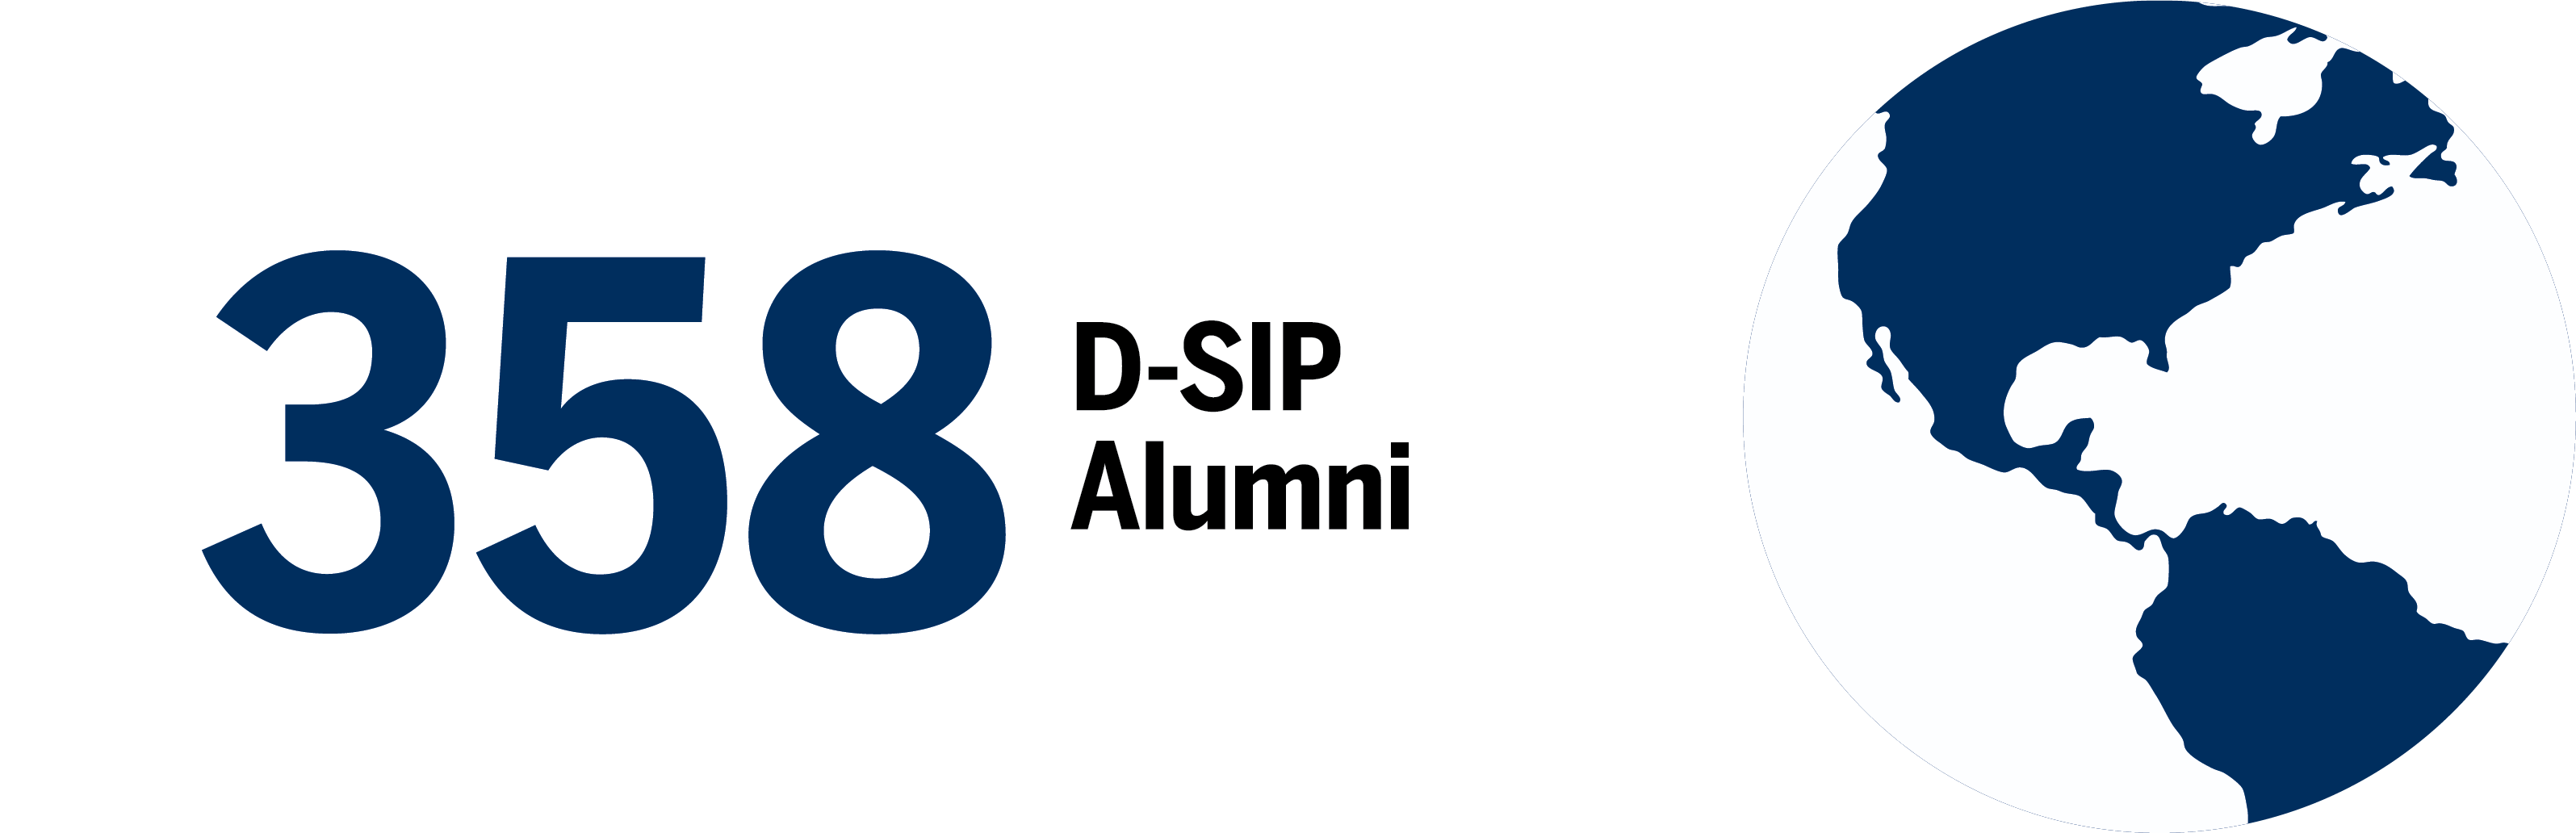 Infographic stating there are 358 D-SIP Alumni